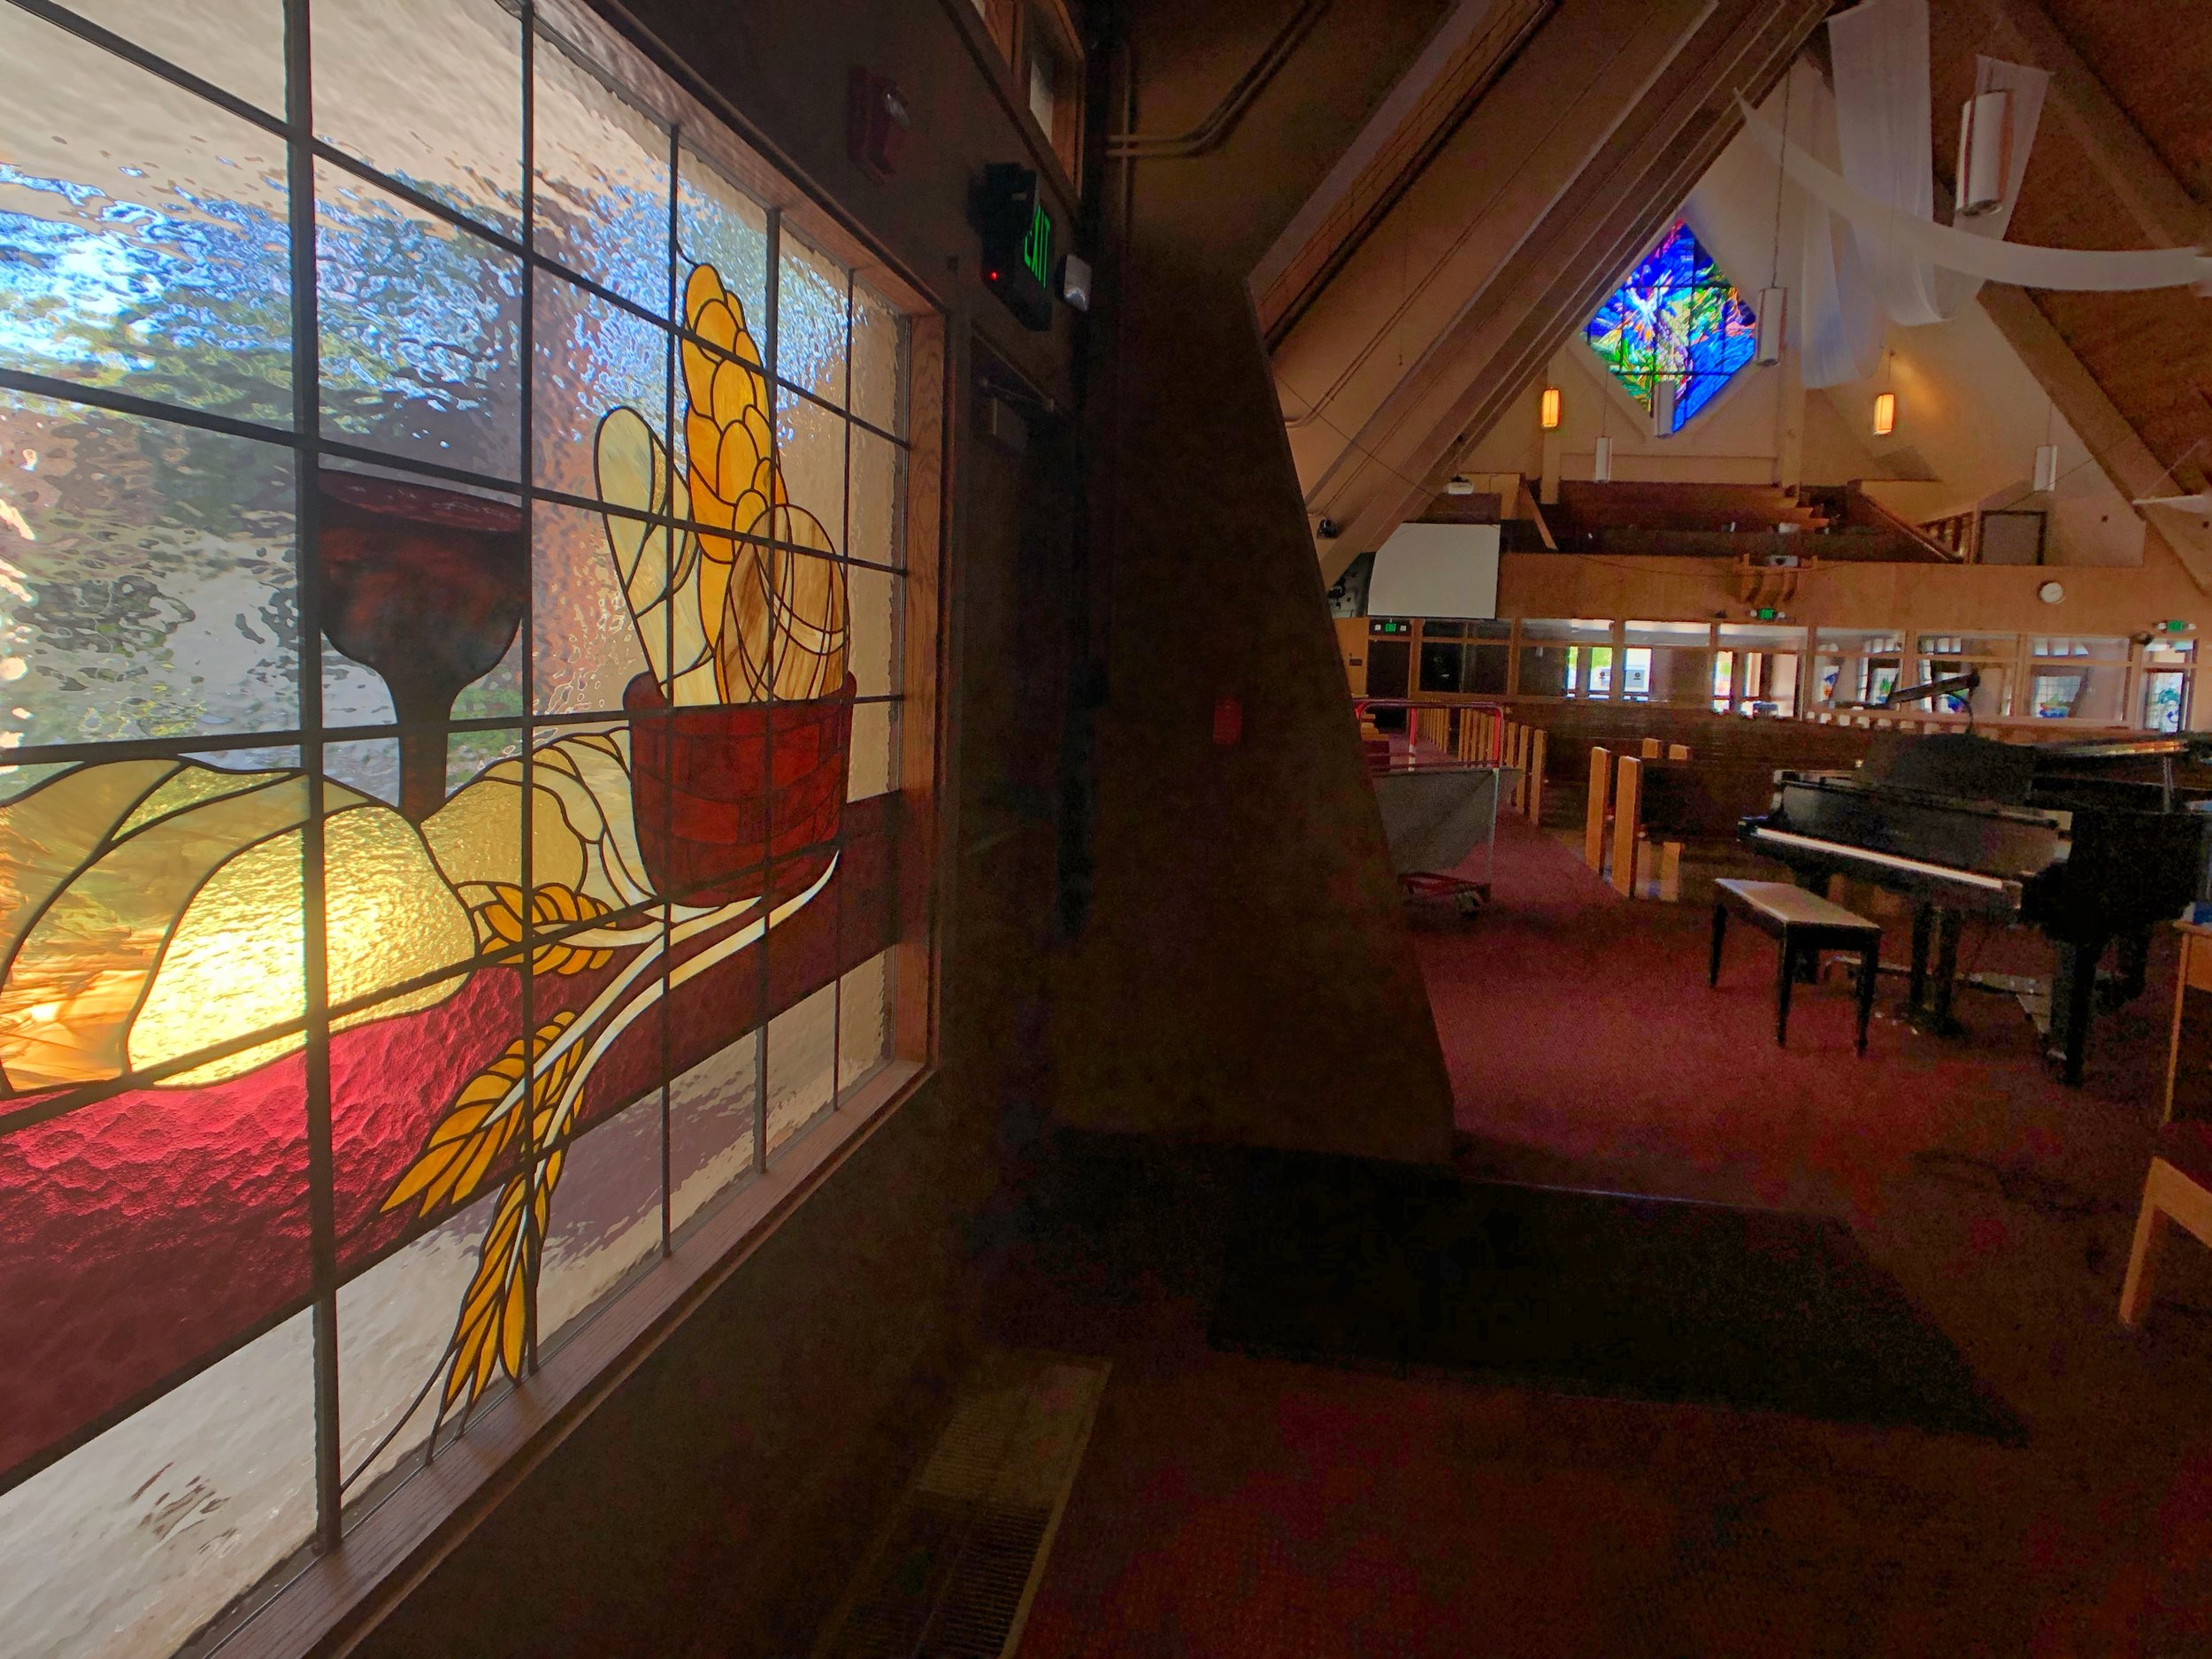 sunnyvale presbyterian church mountain view california legacy glass studios custom stained glass communion bread wine wheat grain design window religious art.jpg